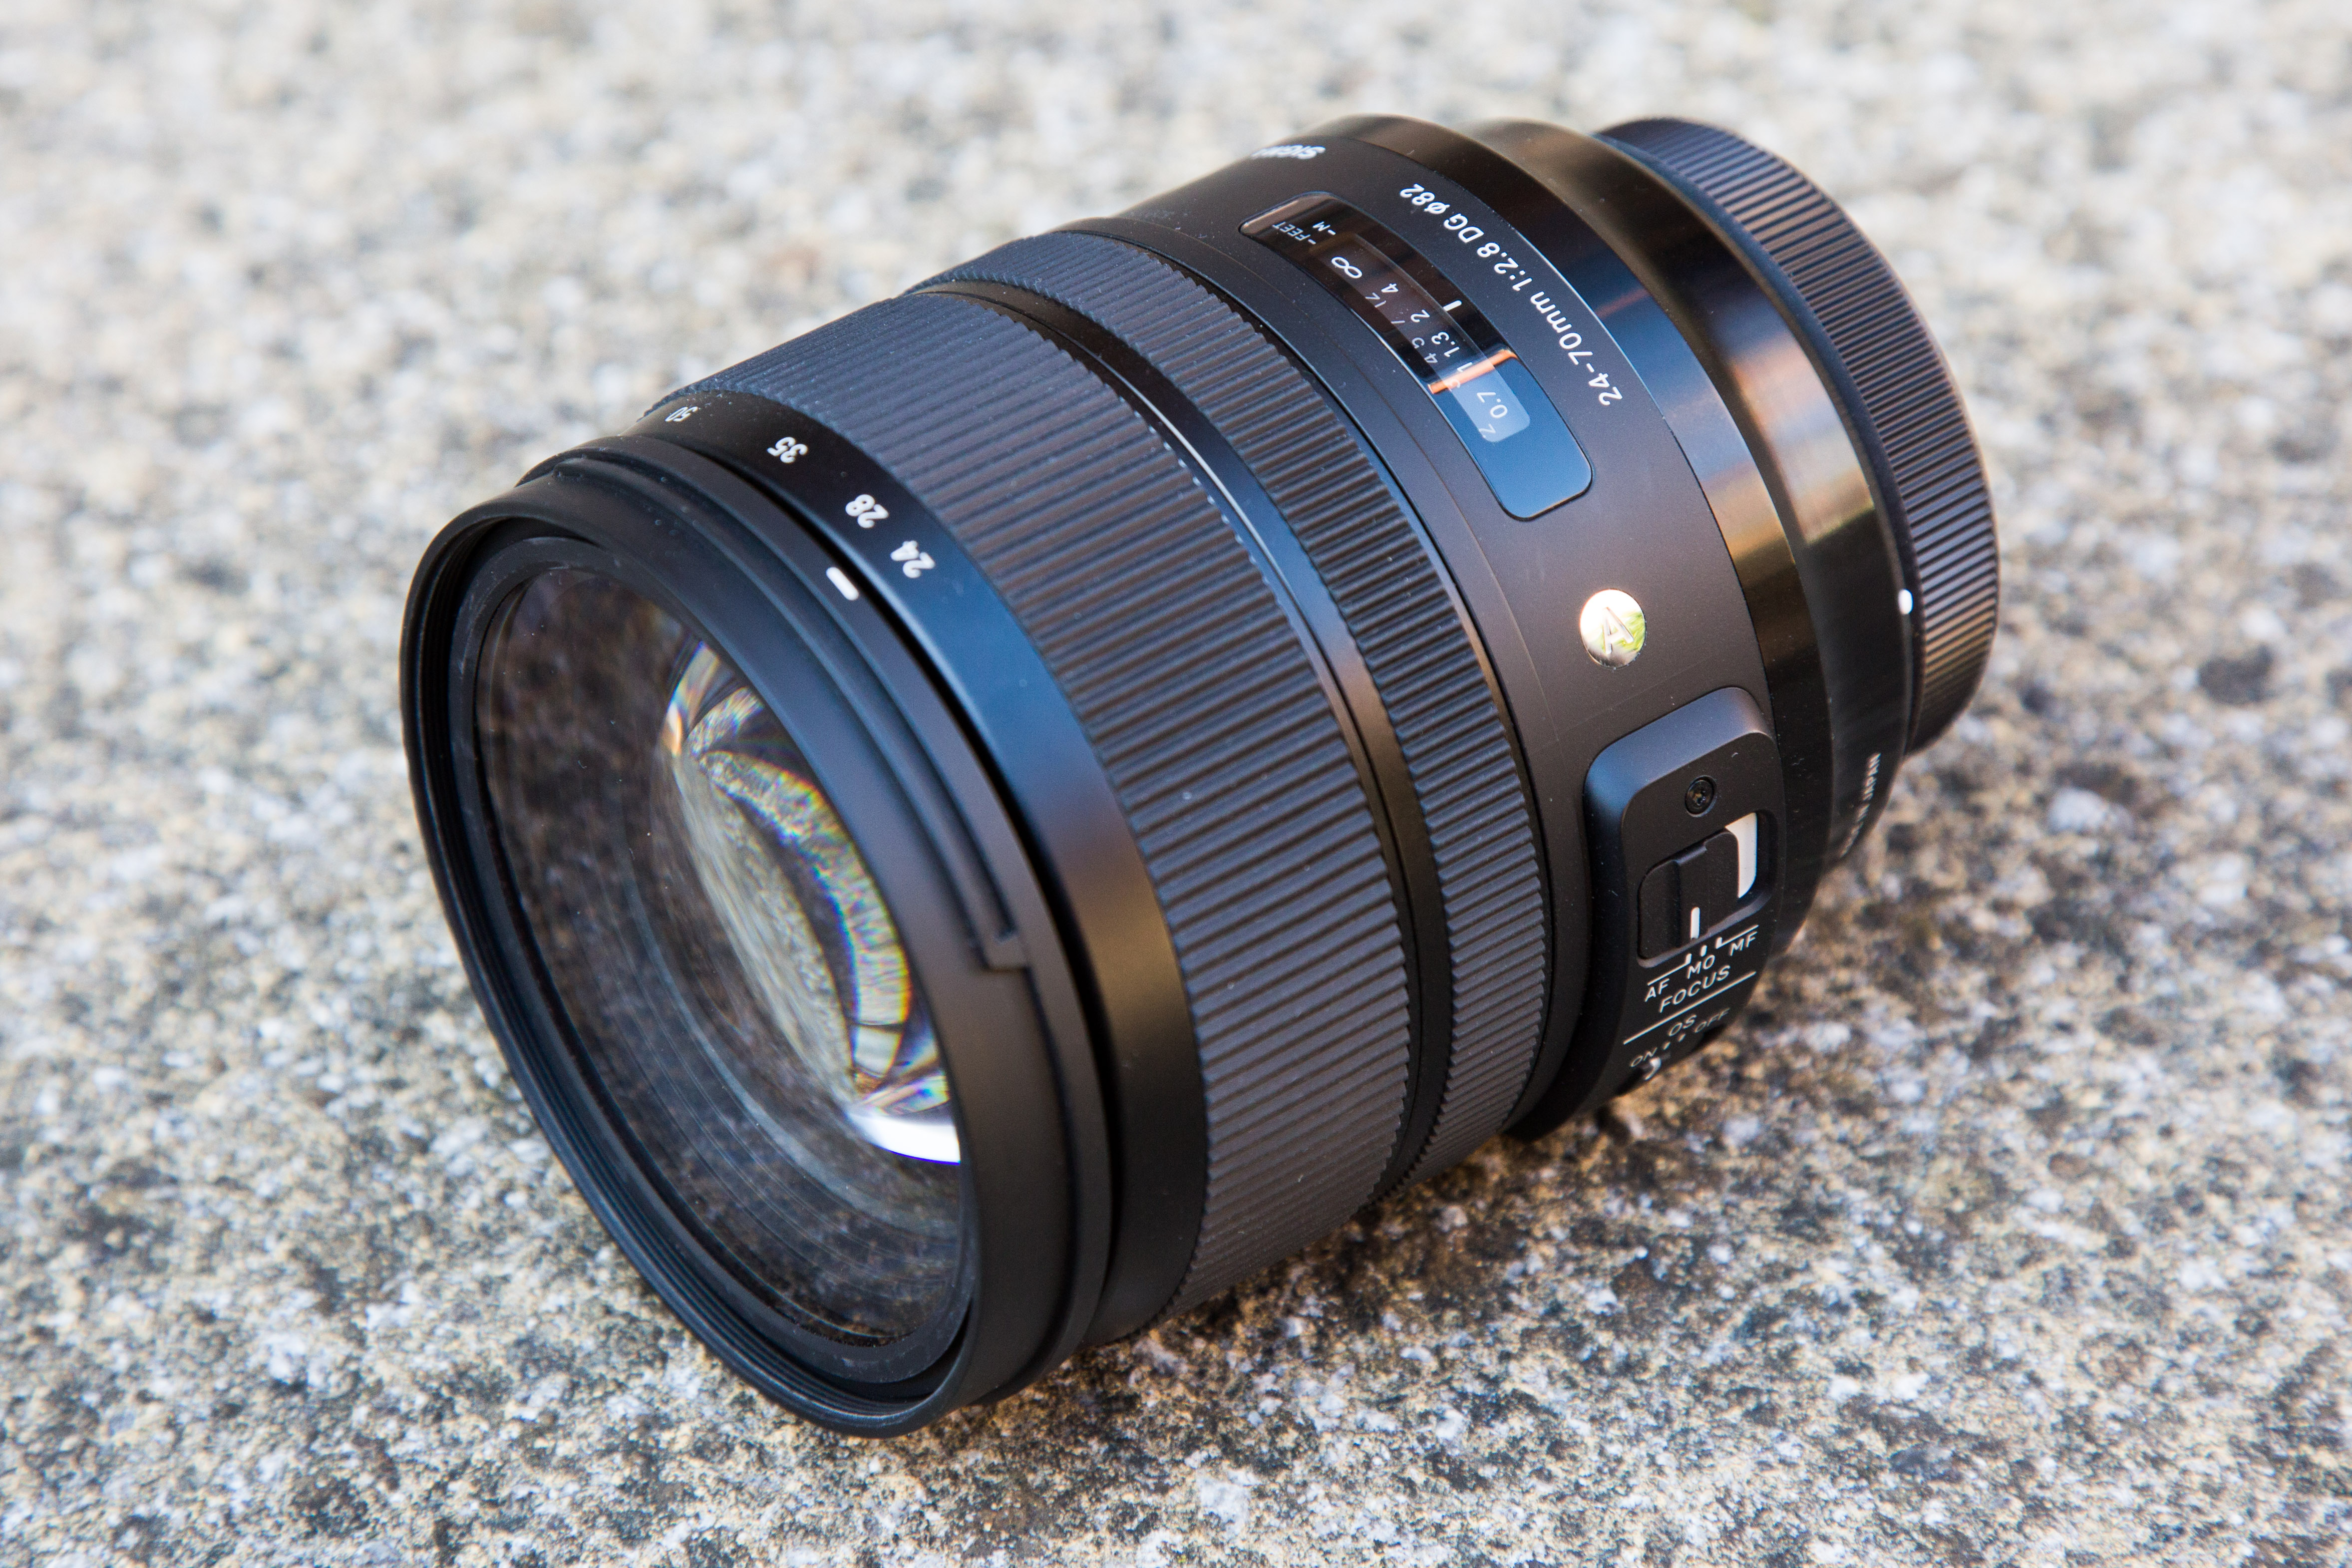 Sigma 24-70mm f/2.8 DG OS HSM Art review